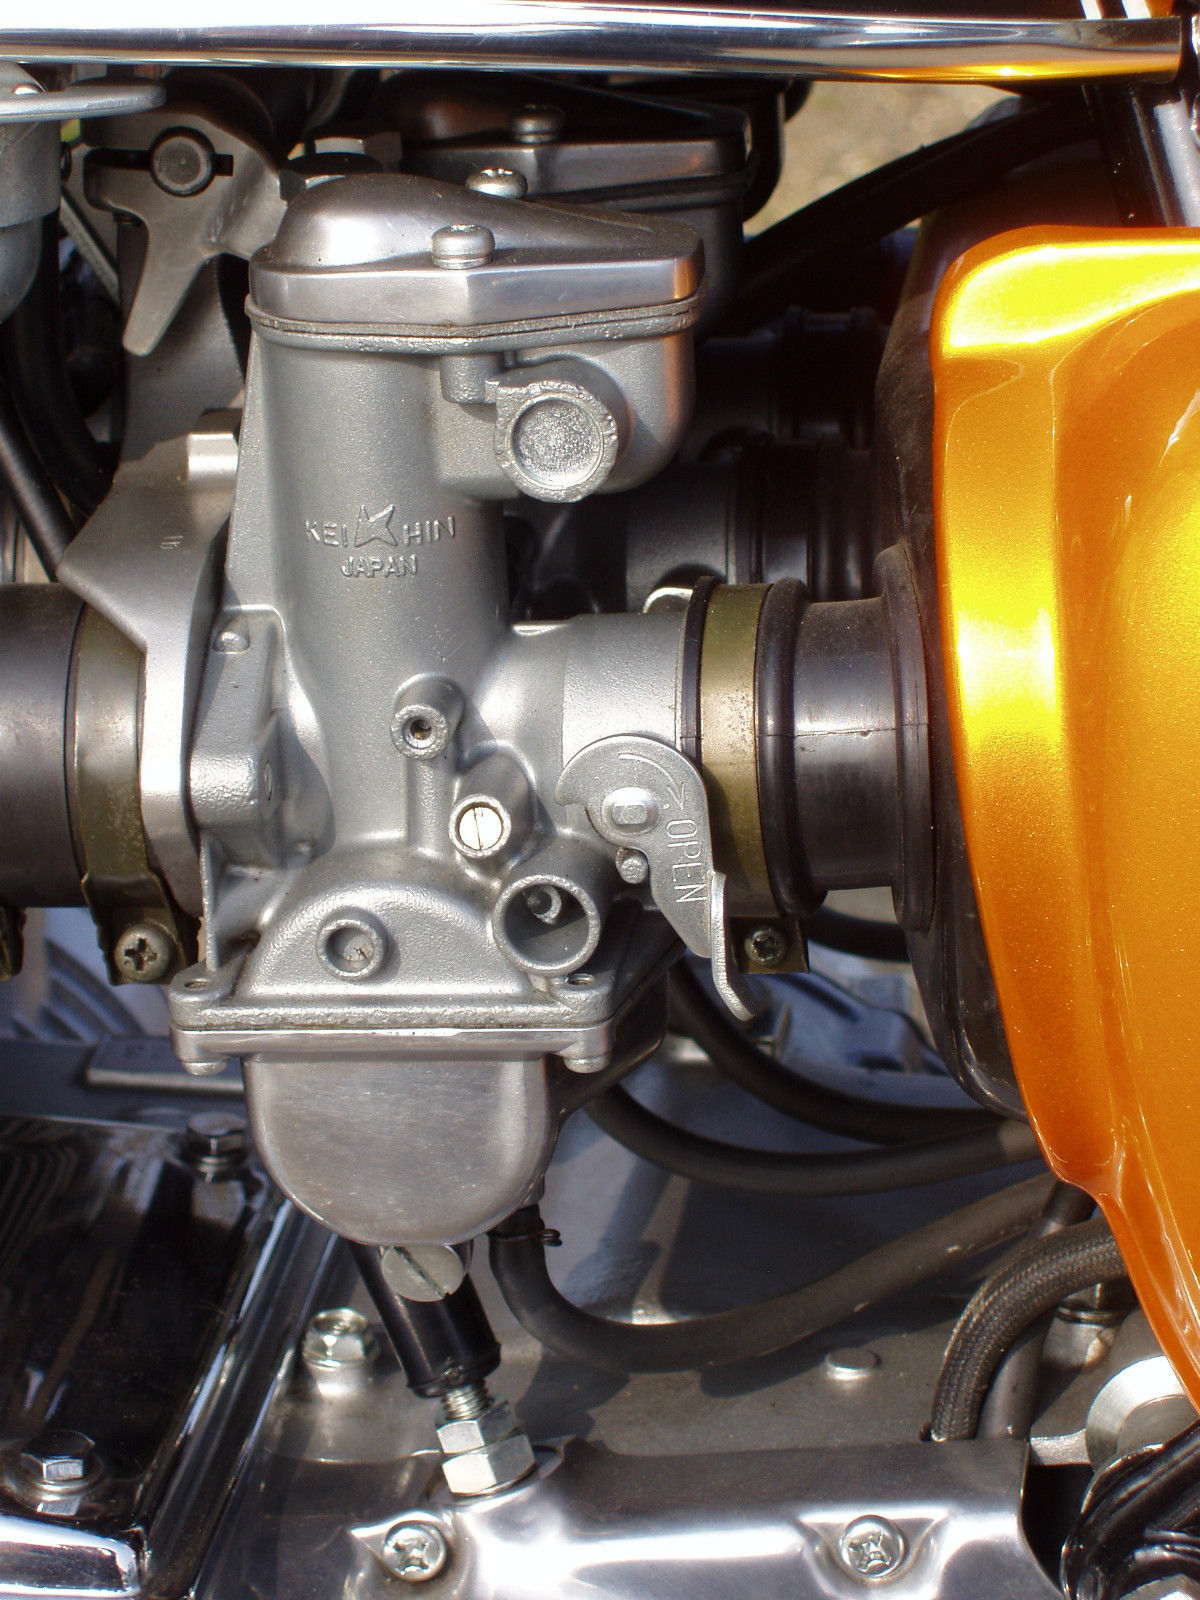 Honda CB500 Four - 1971 - Carburettor, Carb, Side Panel, Carb Rubber and Inlet.